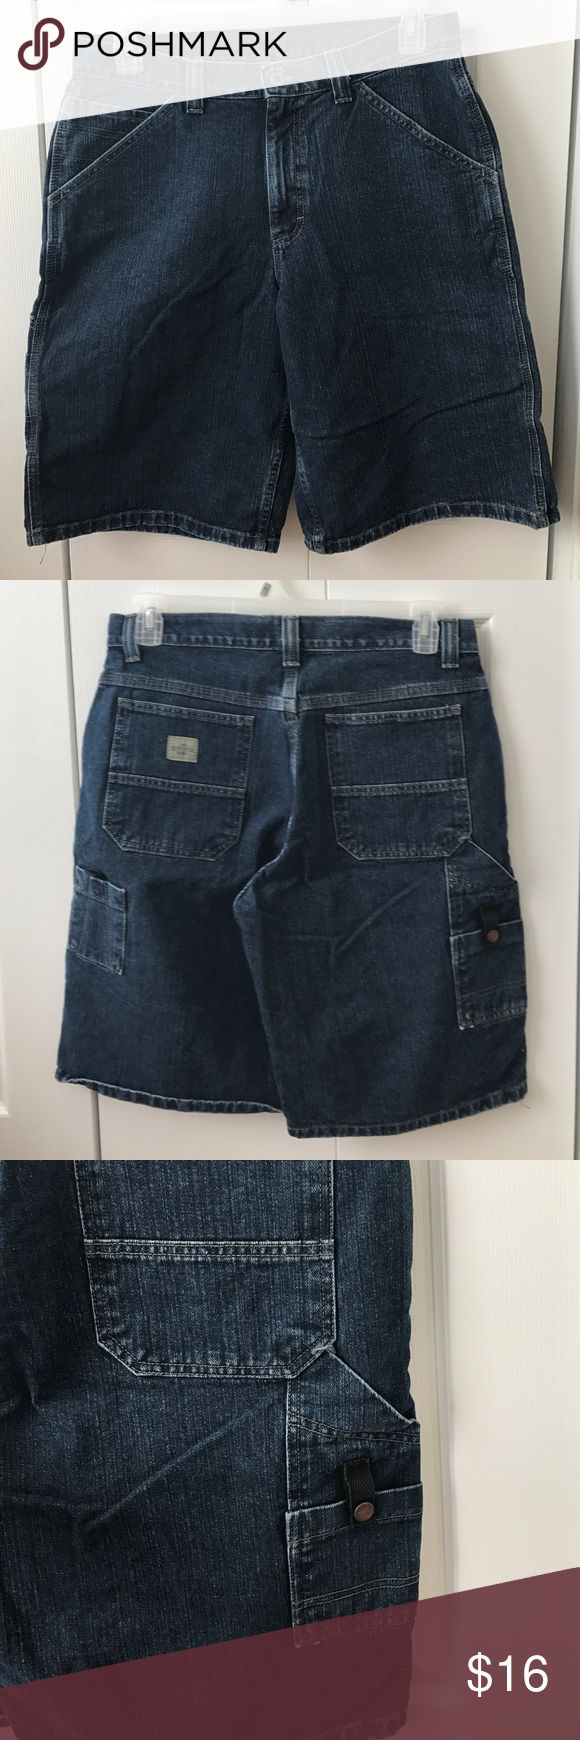 Mens carpenter pocket denim jean shorts New without tags, washed once. Size 32, Lee Dungarees with pockets on each side as shown in pics. Offers welcome with the offer button only please! Lee Dungarees Shorts Jean Shorts